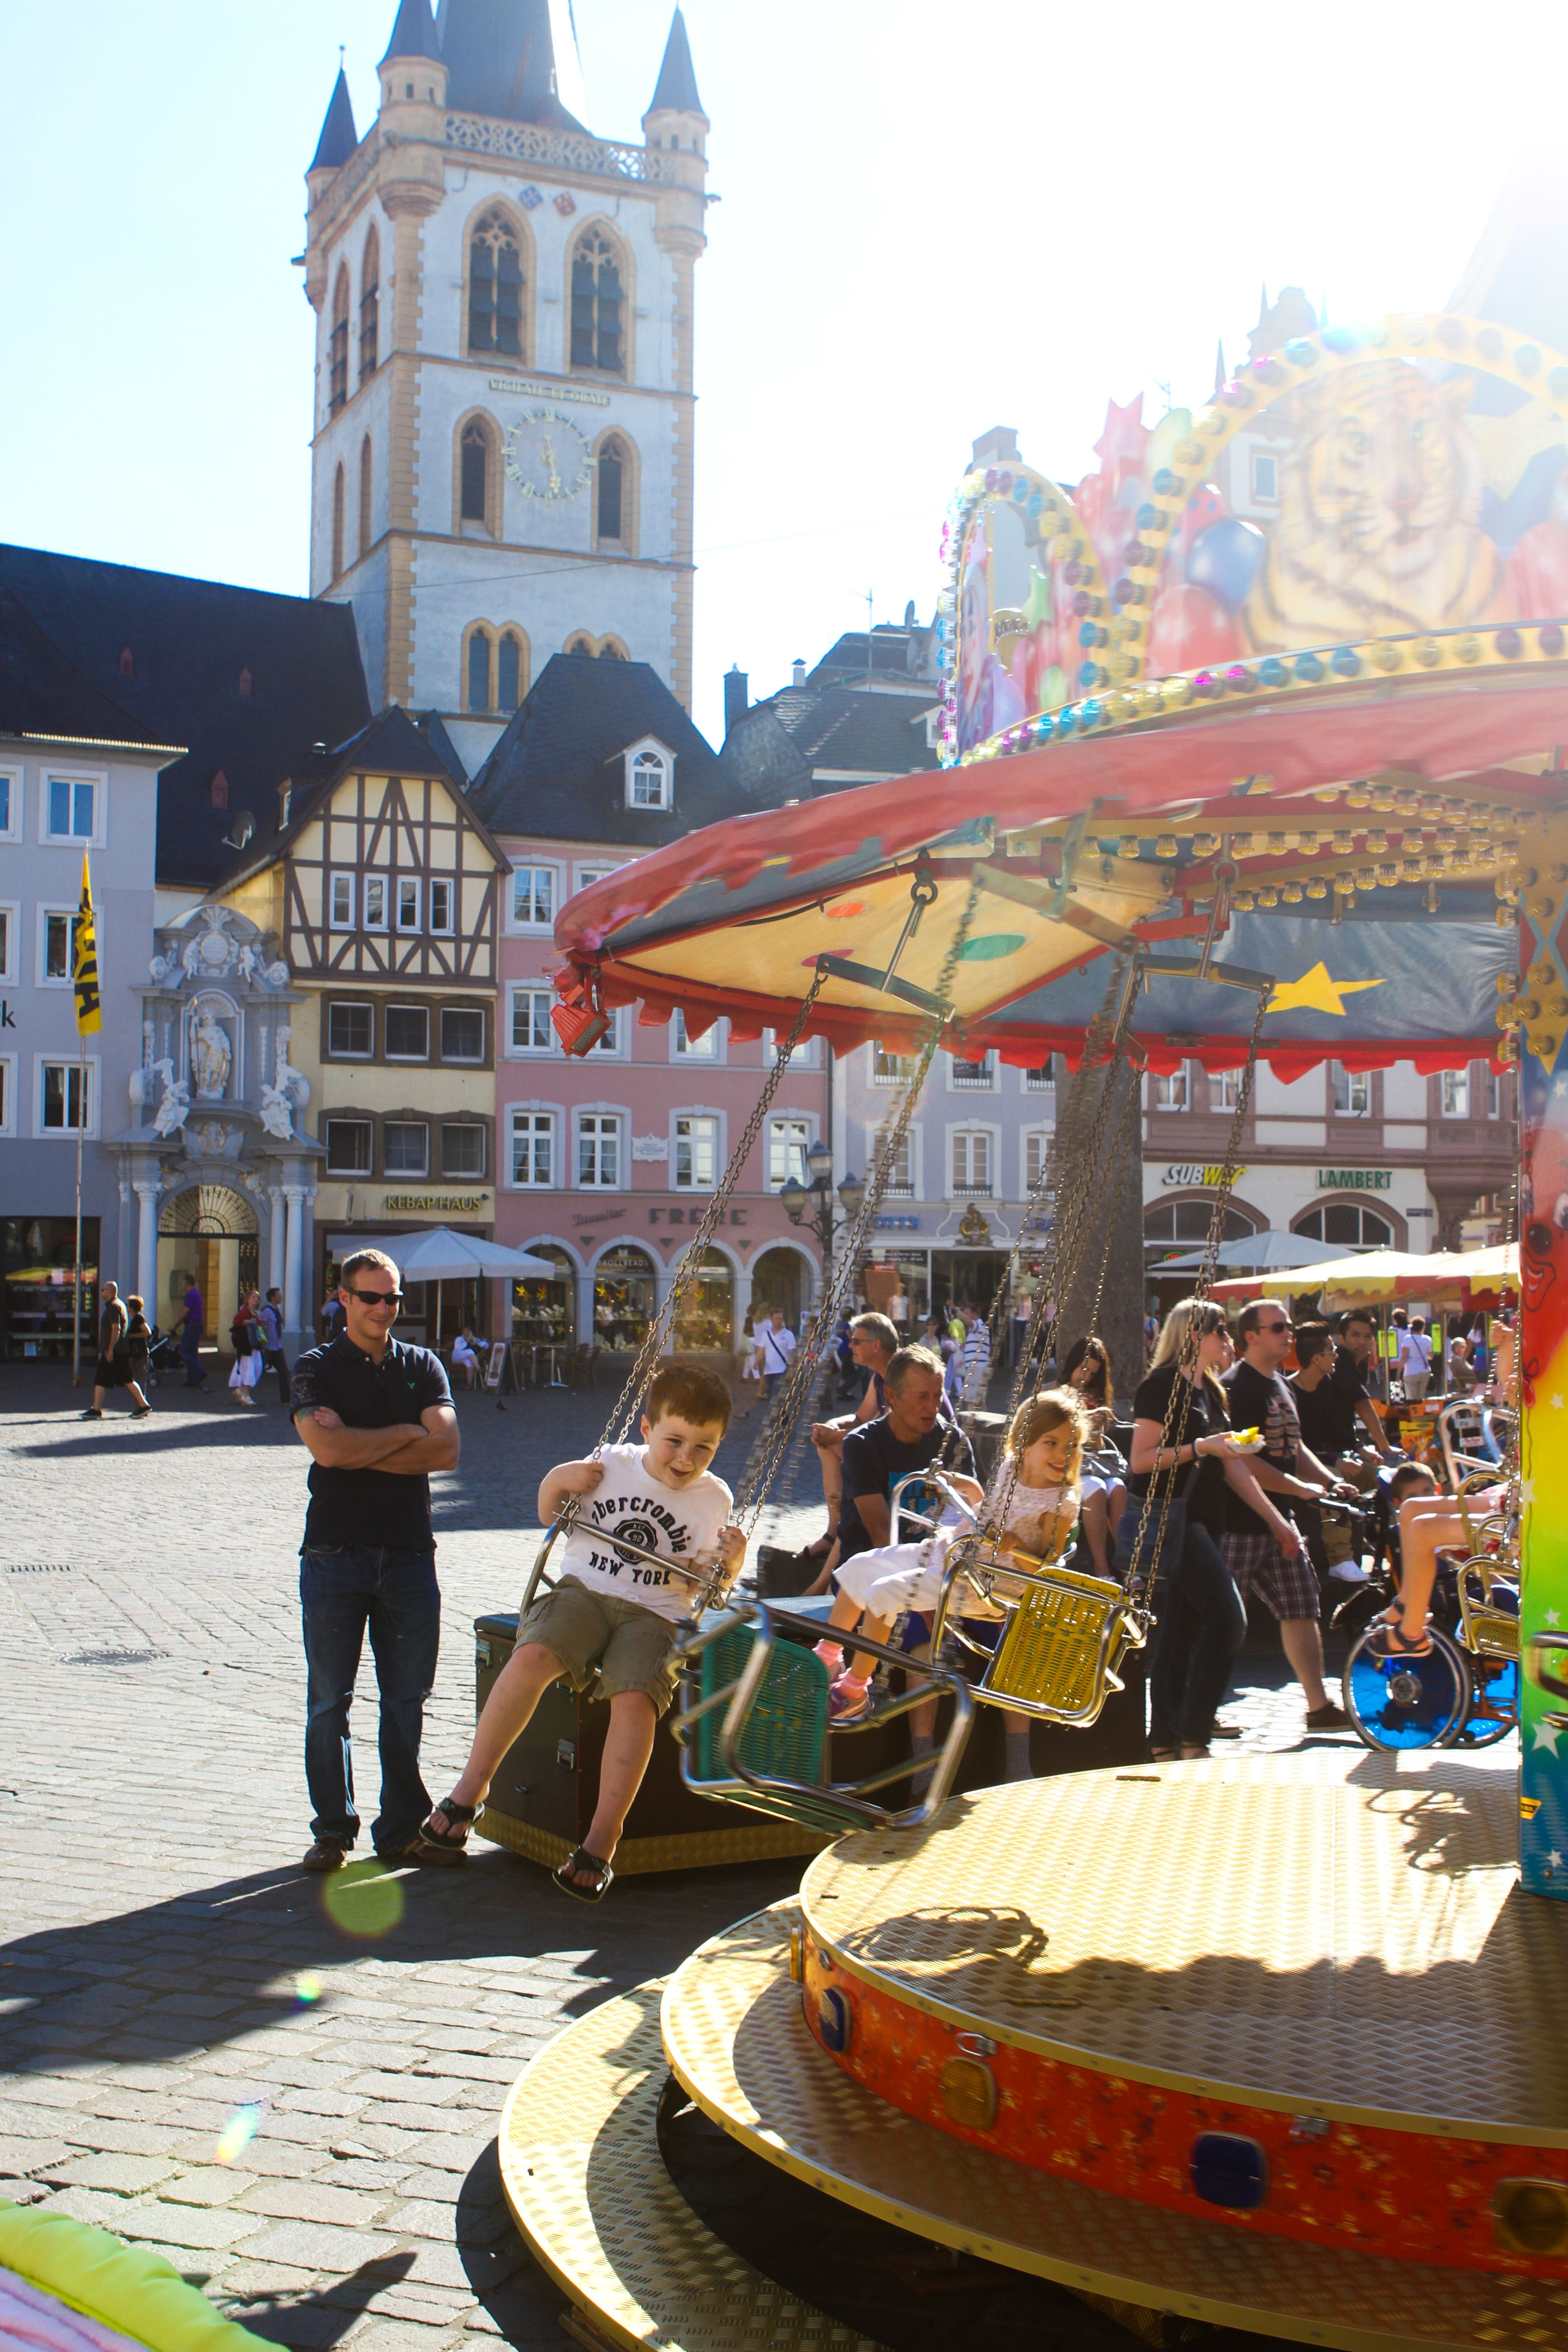 Swinging in the town square - Trier, Germany | Germany